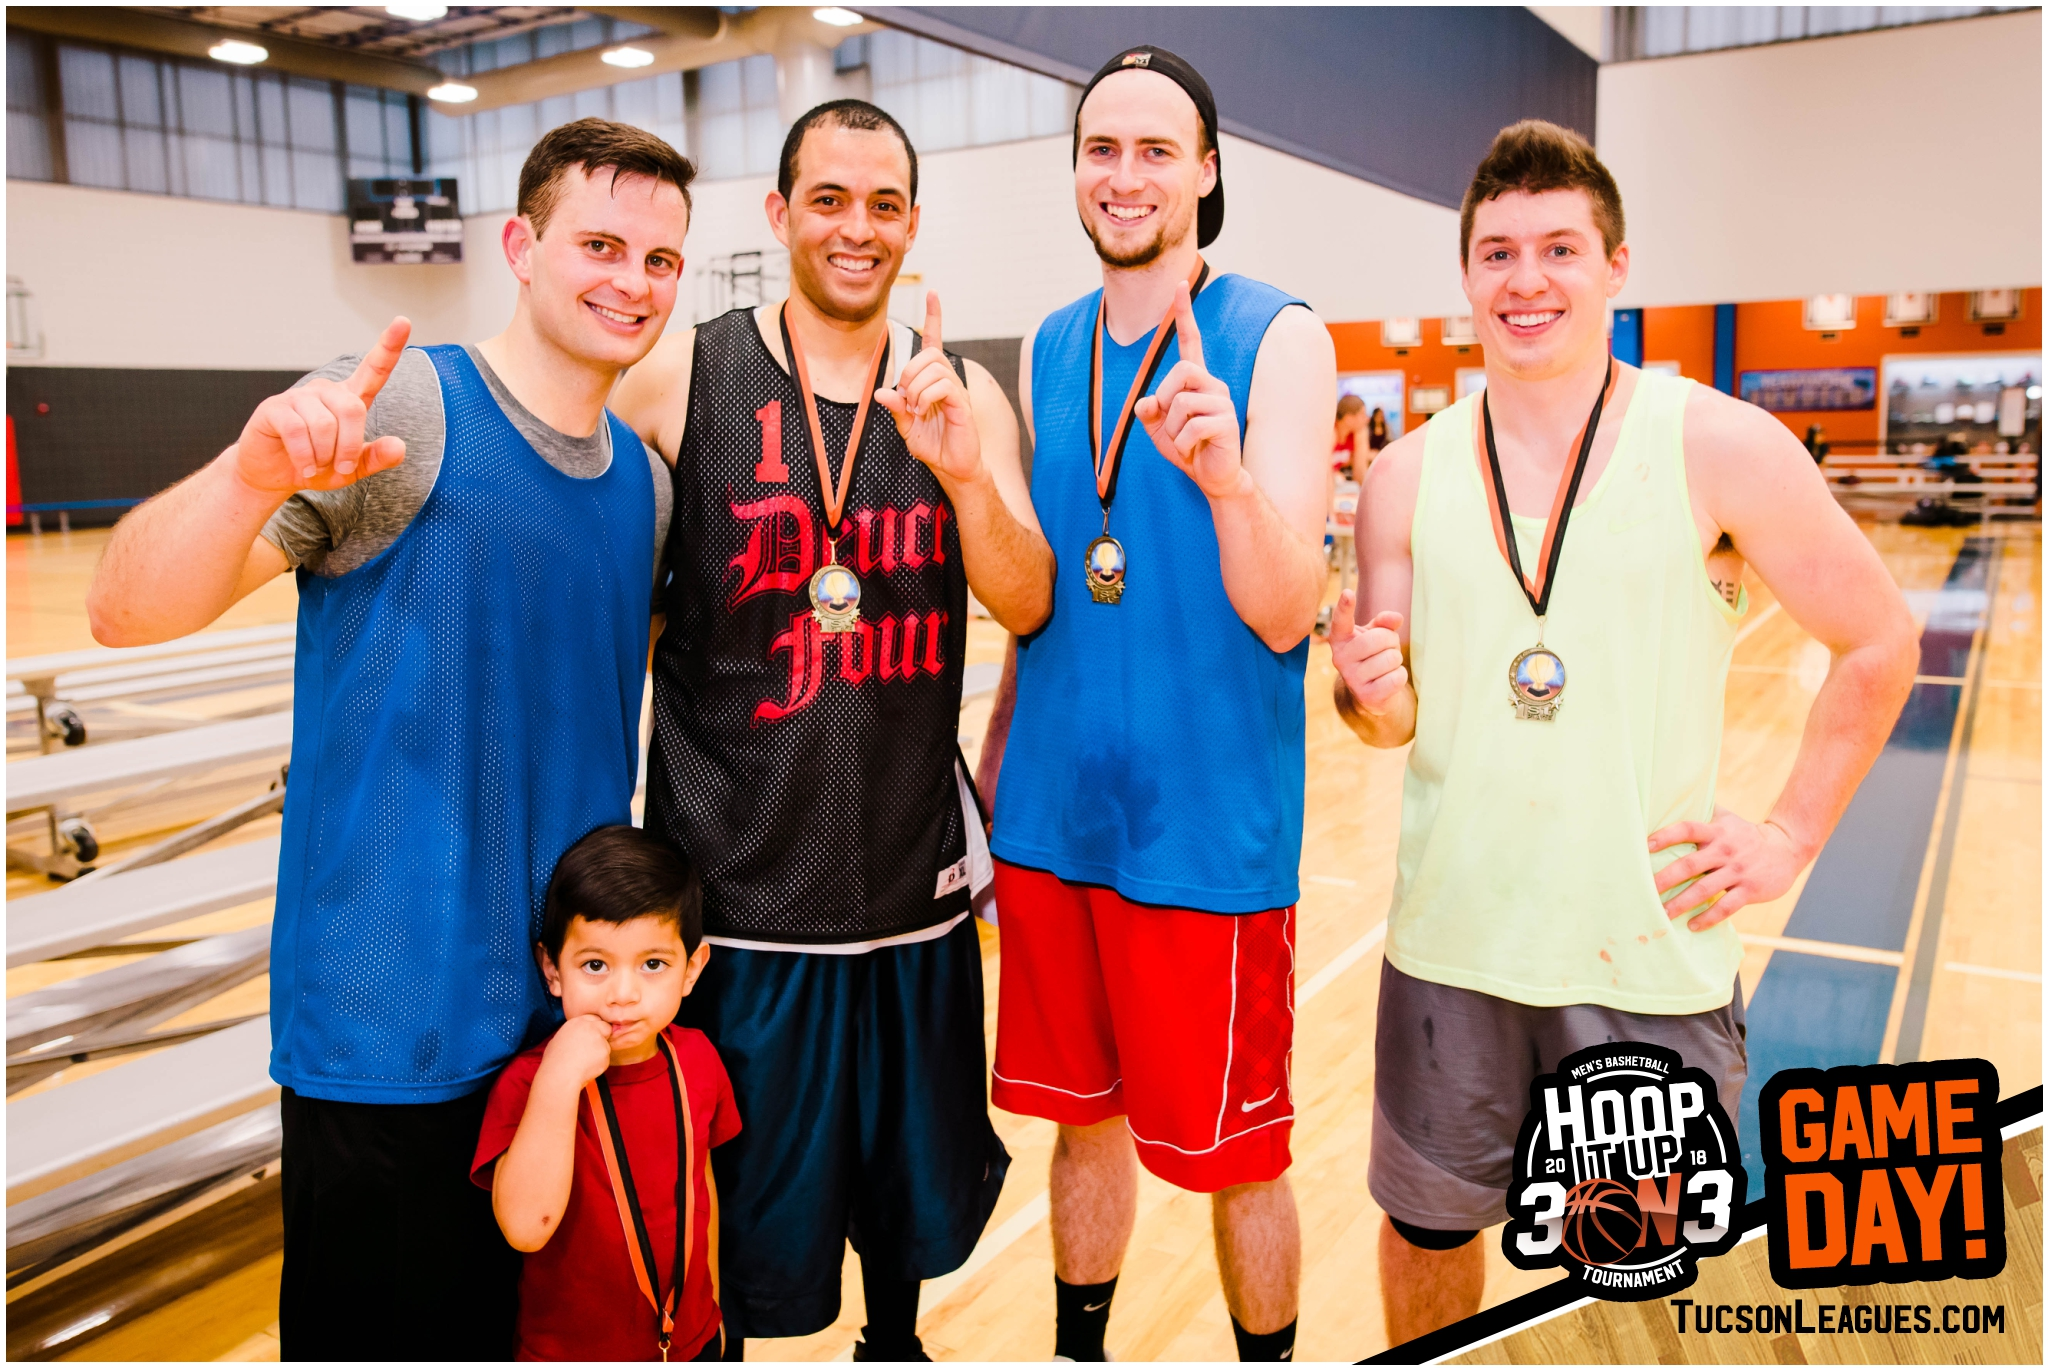 Mar 10th Hoop it Up 3 on 3 Men's Basketball Tournament - Gold Champions